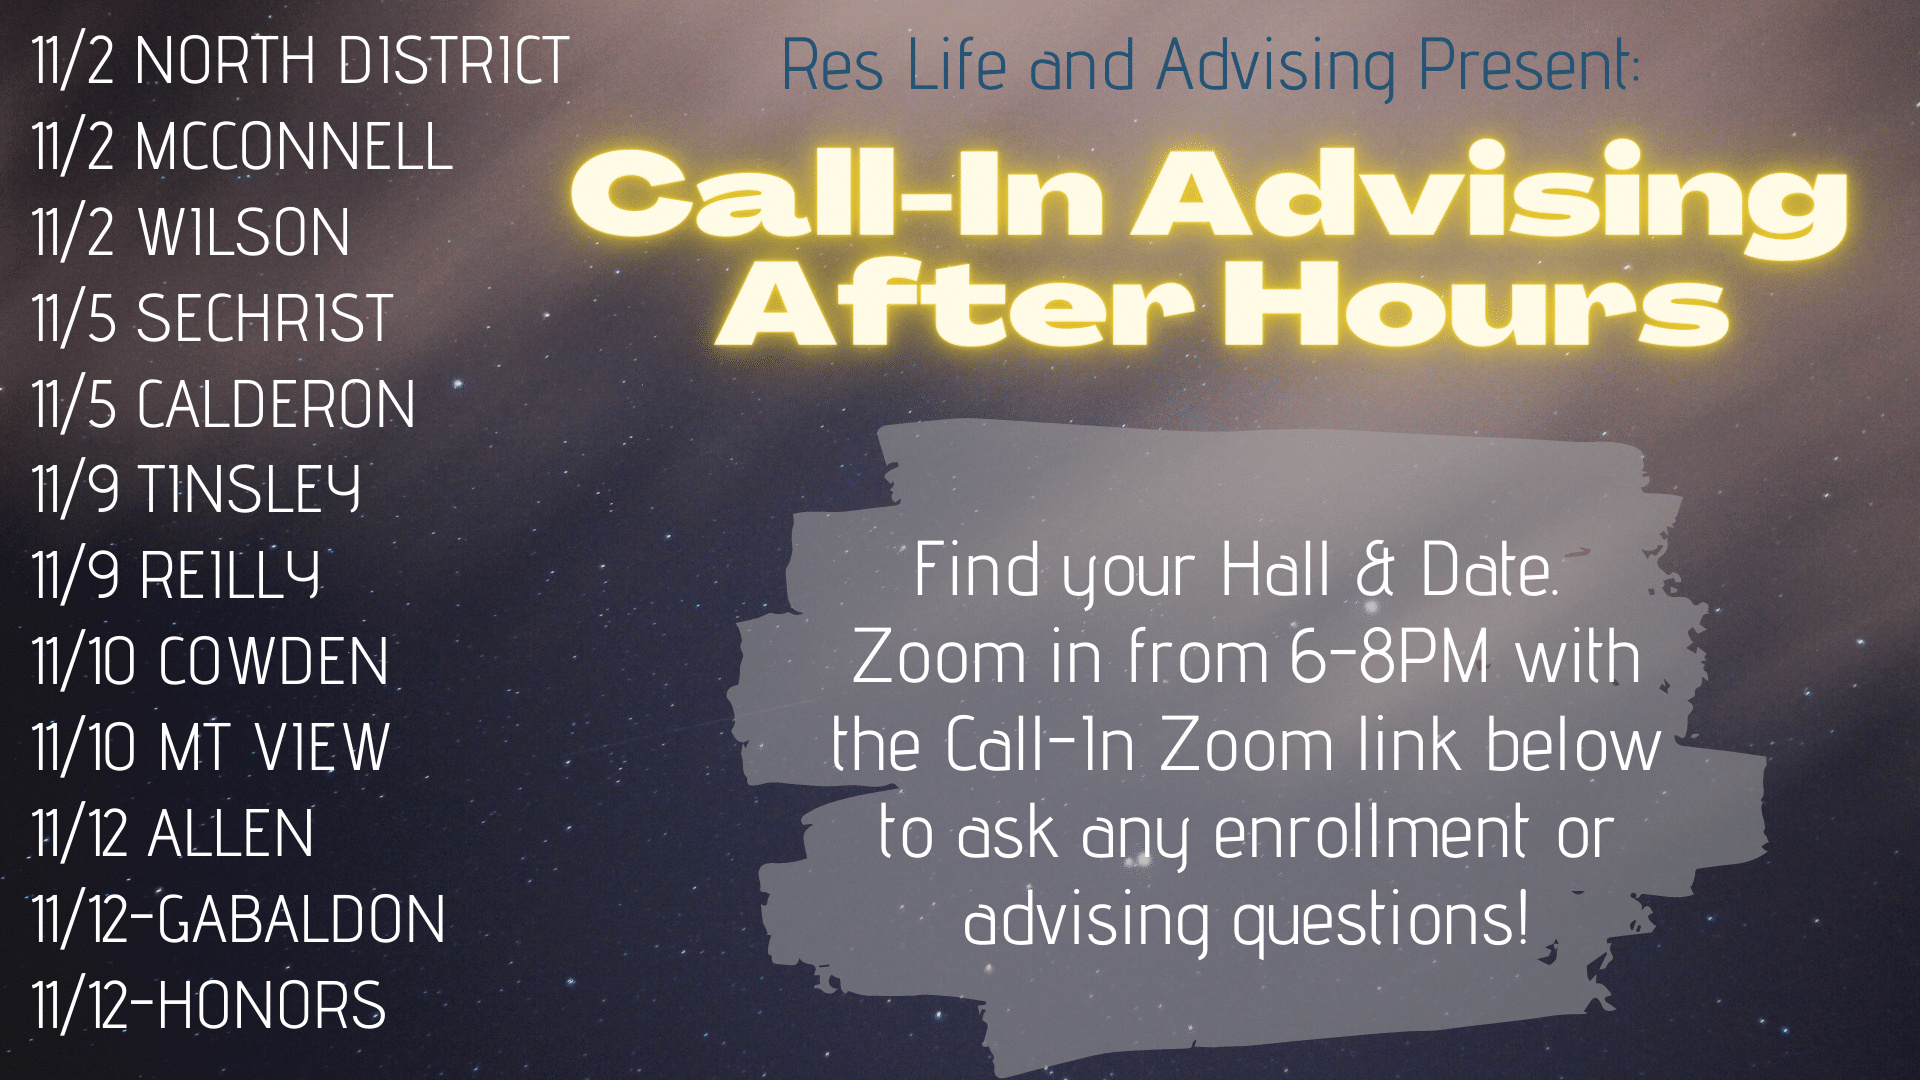 Call-In Advising After Hours